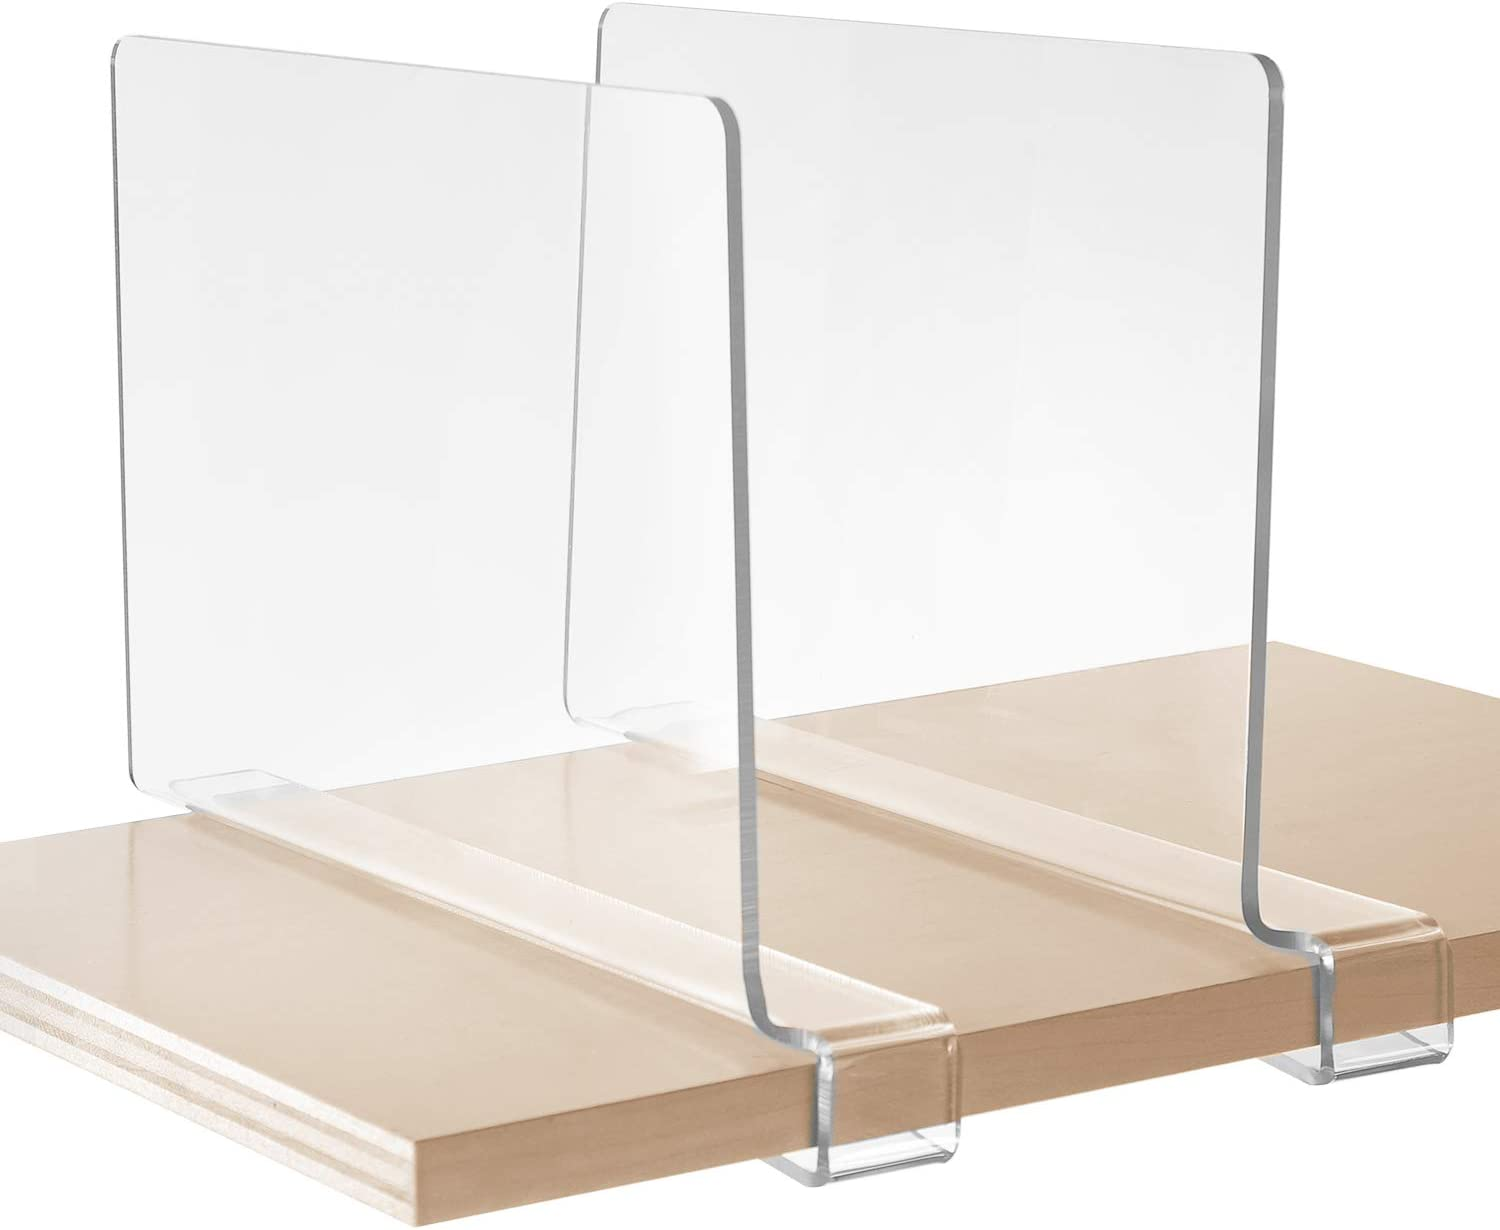 StorageMaid - Set of 2 - Acrylic Shelf Dividers for Bedroom Closets, Kitchen Cabinets, Wood Shelves, Bookcases and Libraries - Versatile, Multi-Functional Organizers for Home and Office - Clear